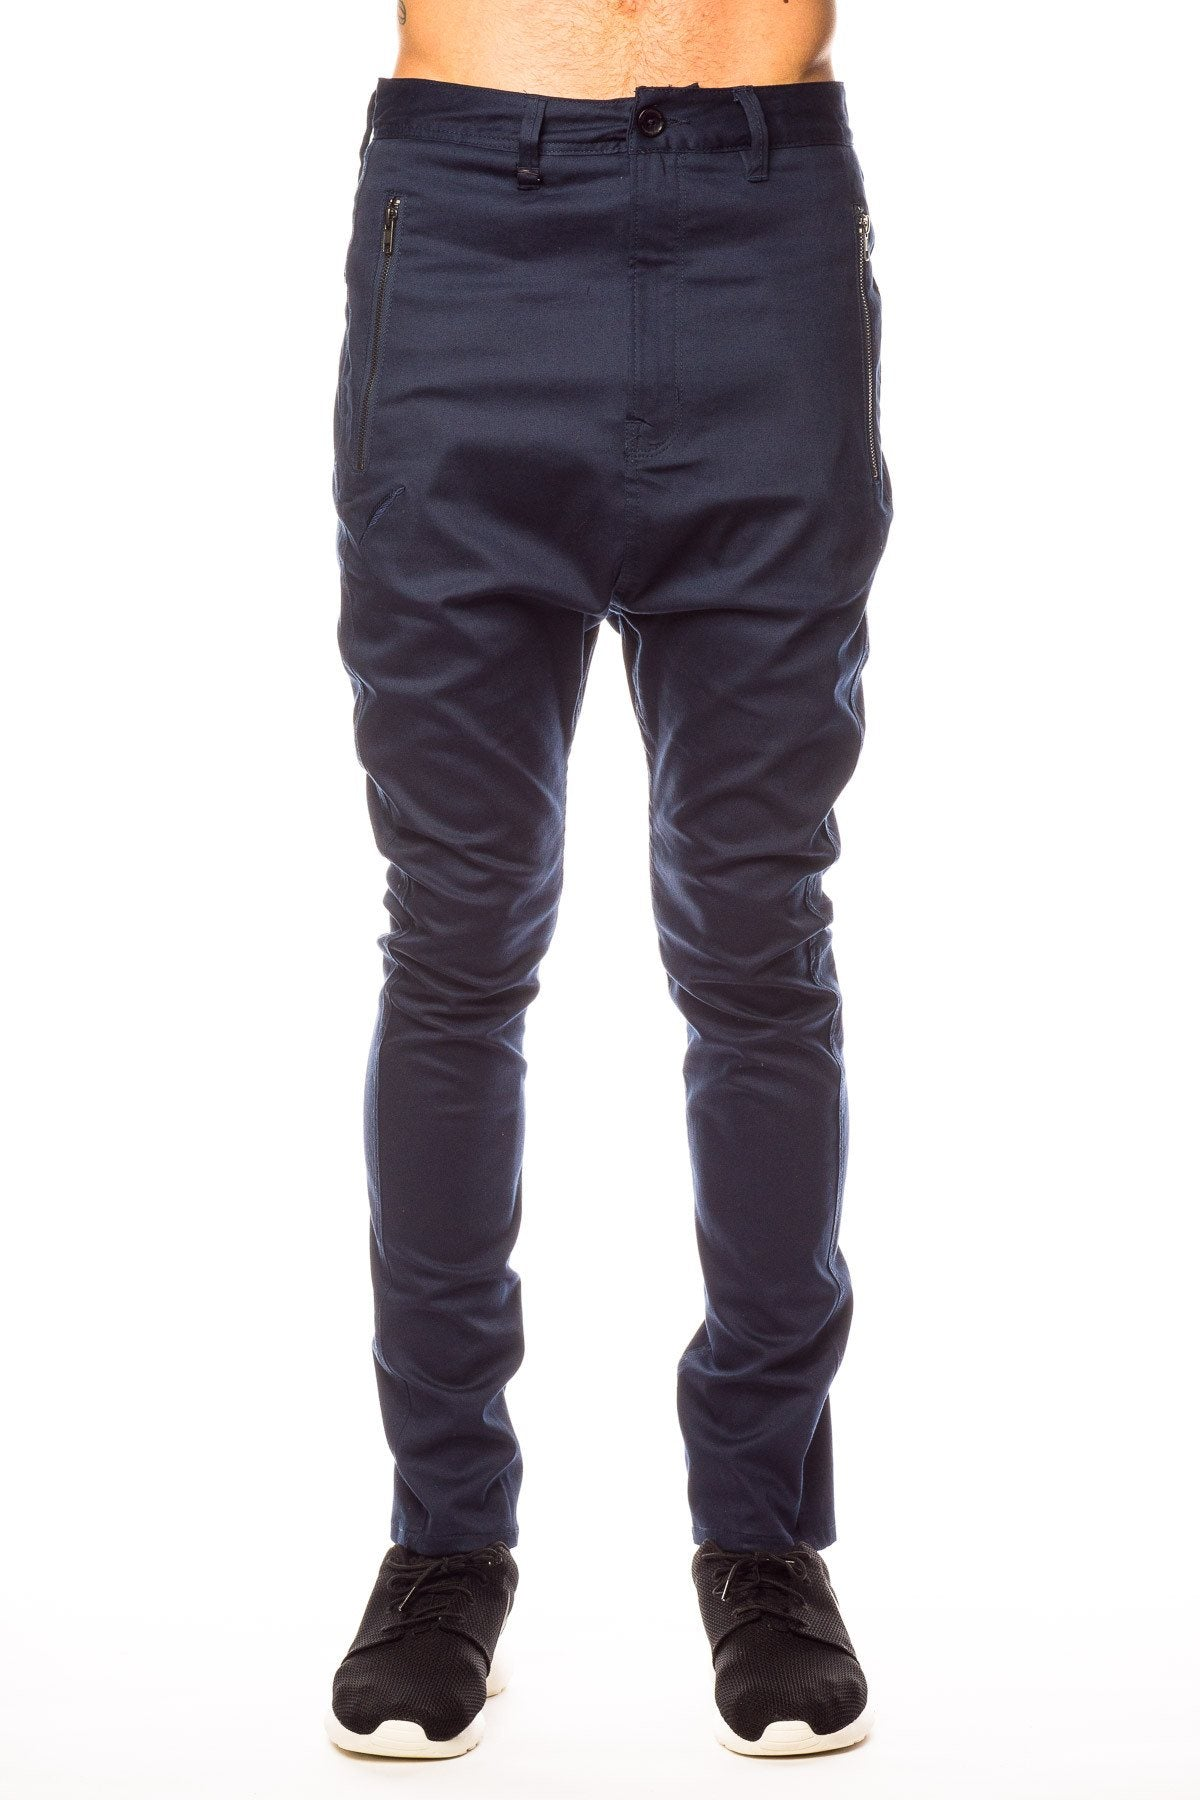 Bottoms - Publish Wyn Drop Stack Navy Pant